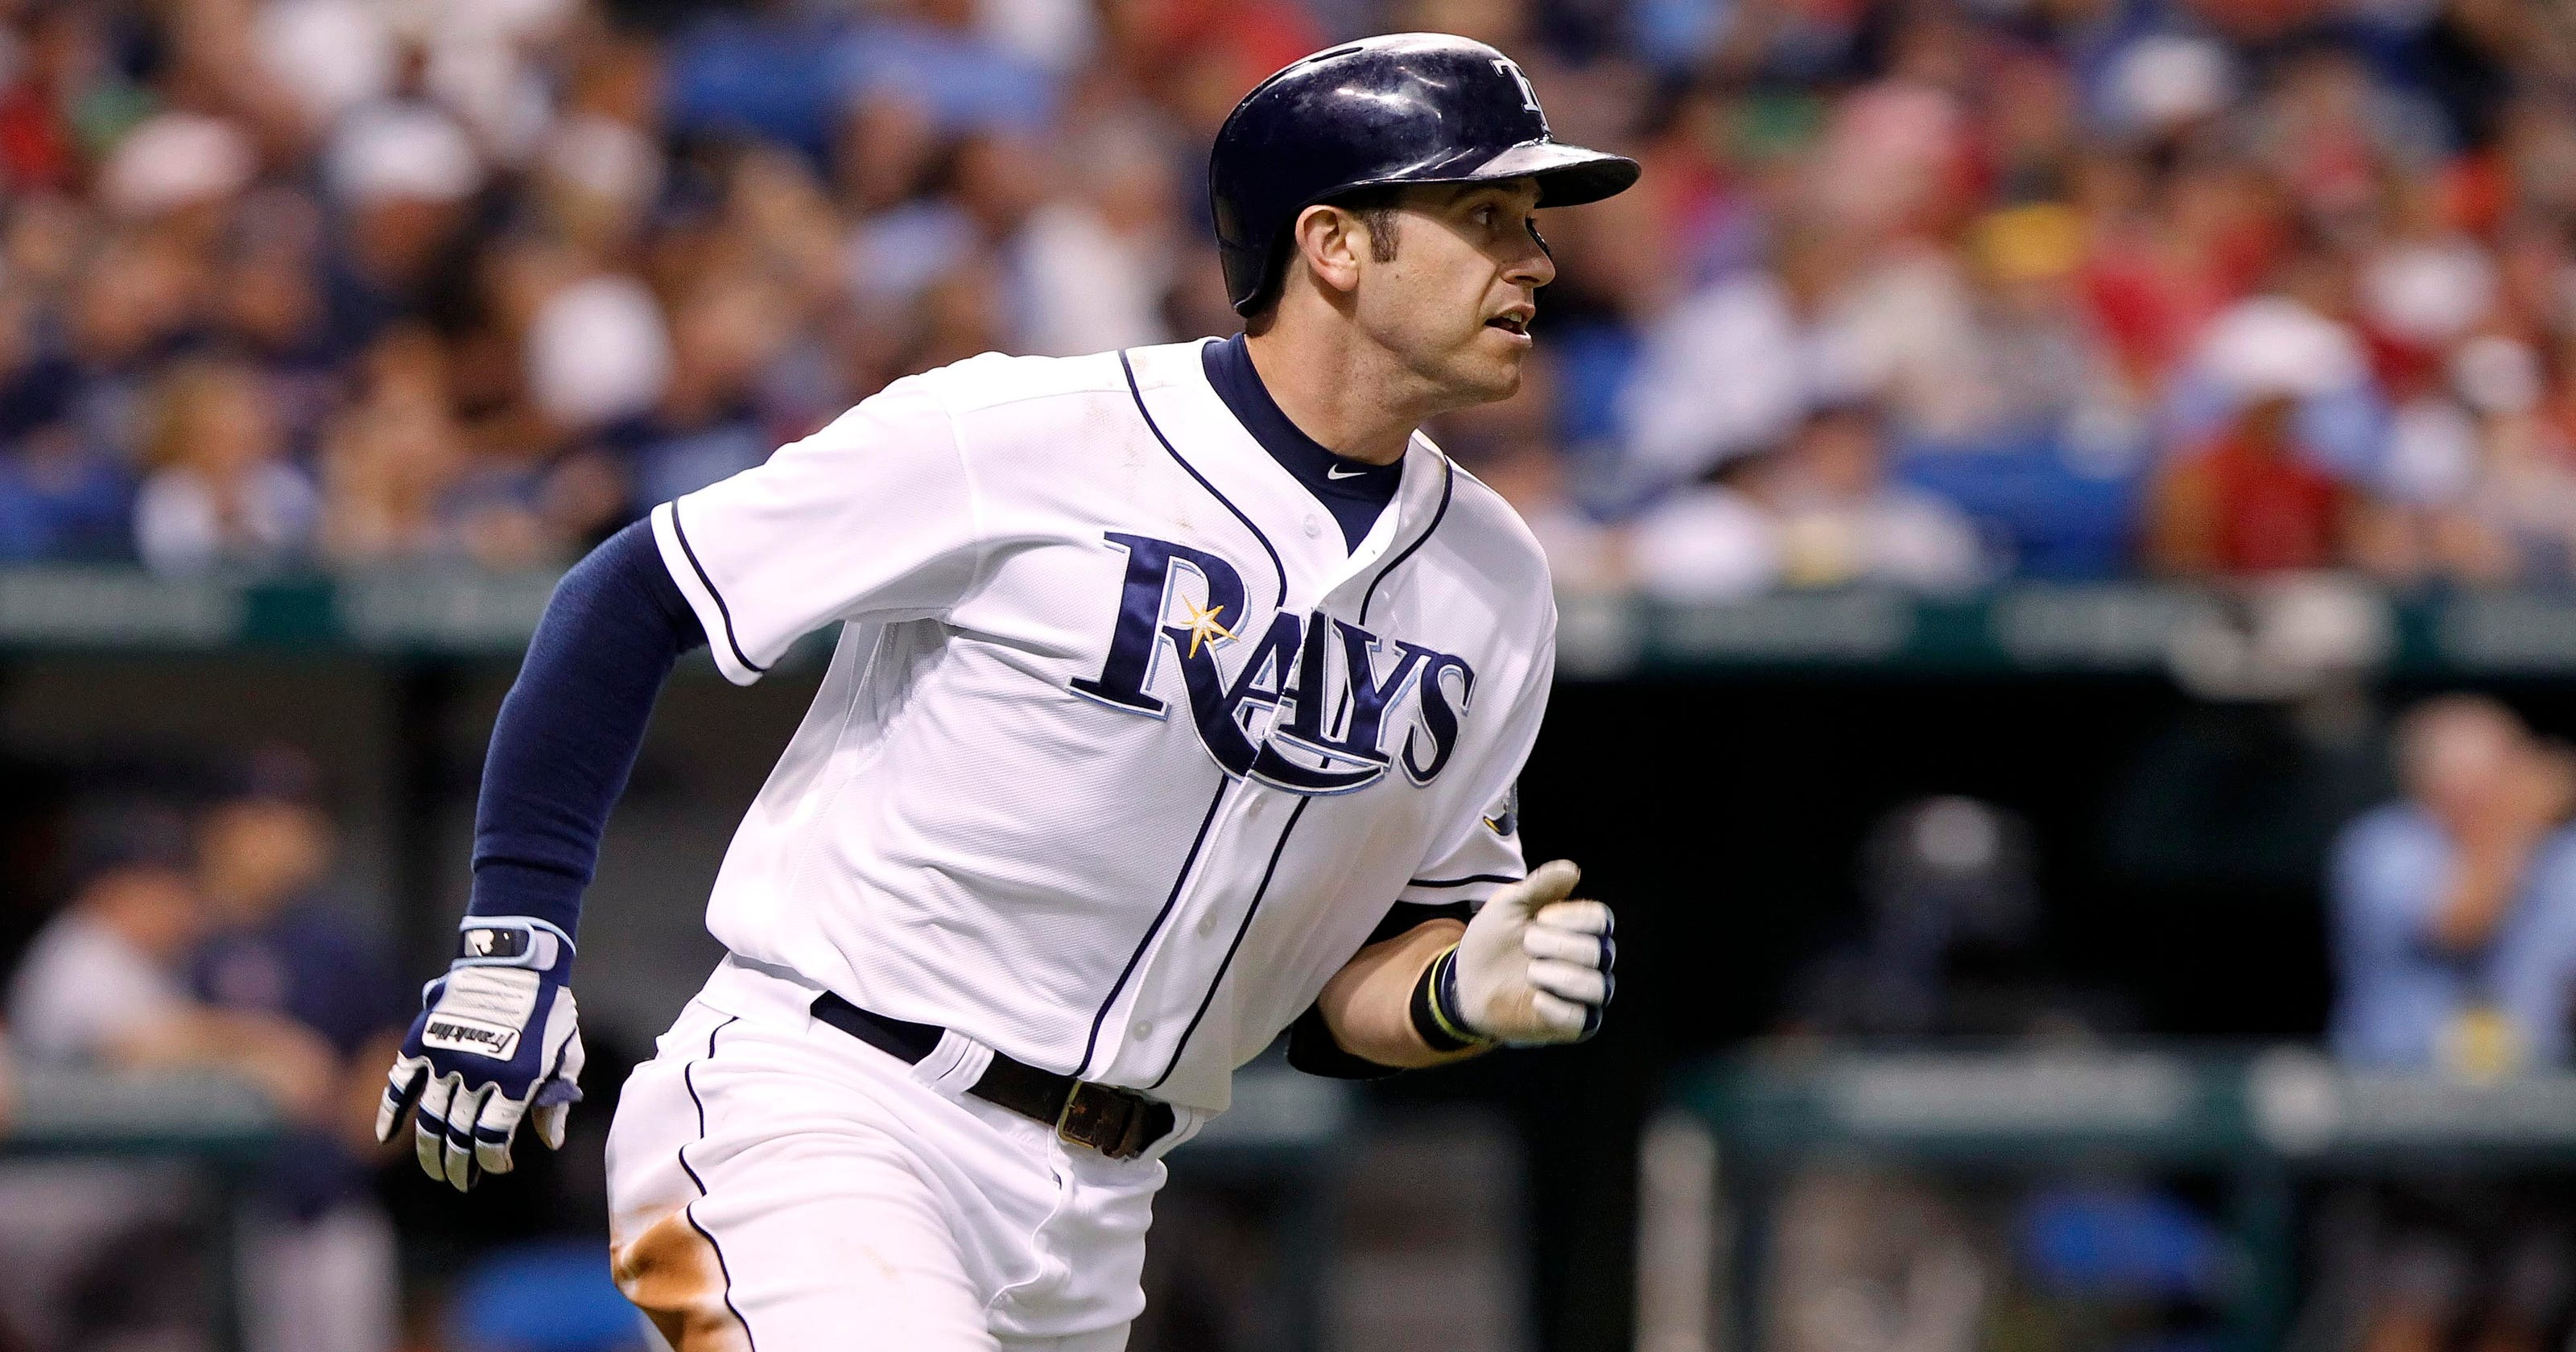 Rays Score Key Win Over Red Sox For Al Wild Card Race